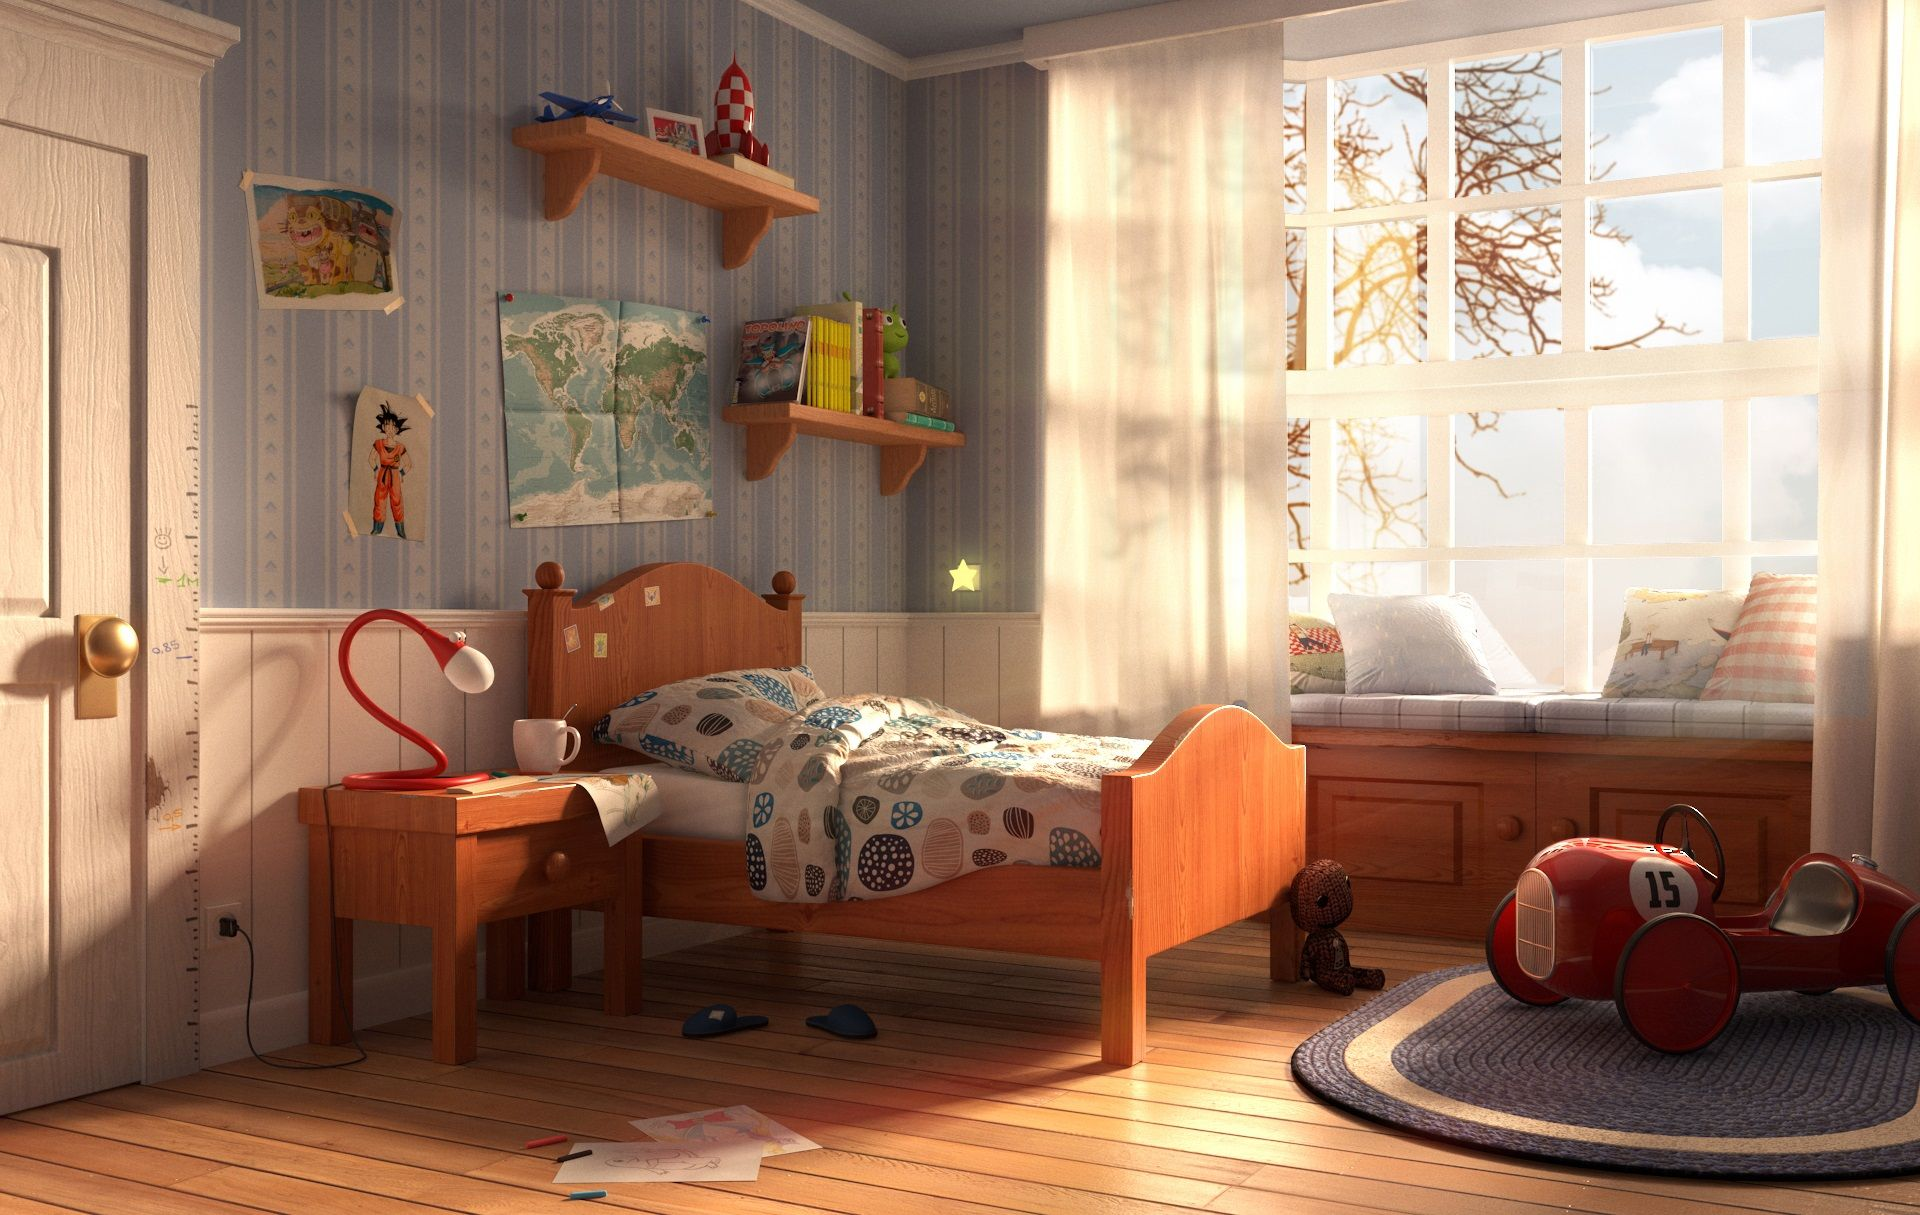 Autumn afternoon by Enrico Zerbo Cartoon 3D